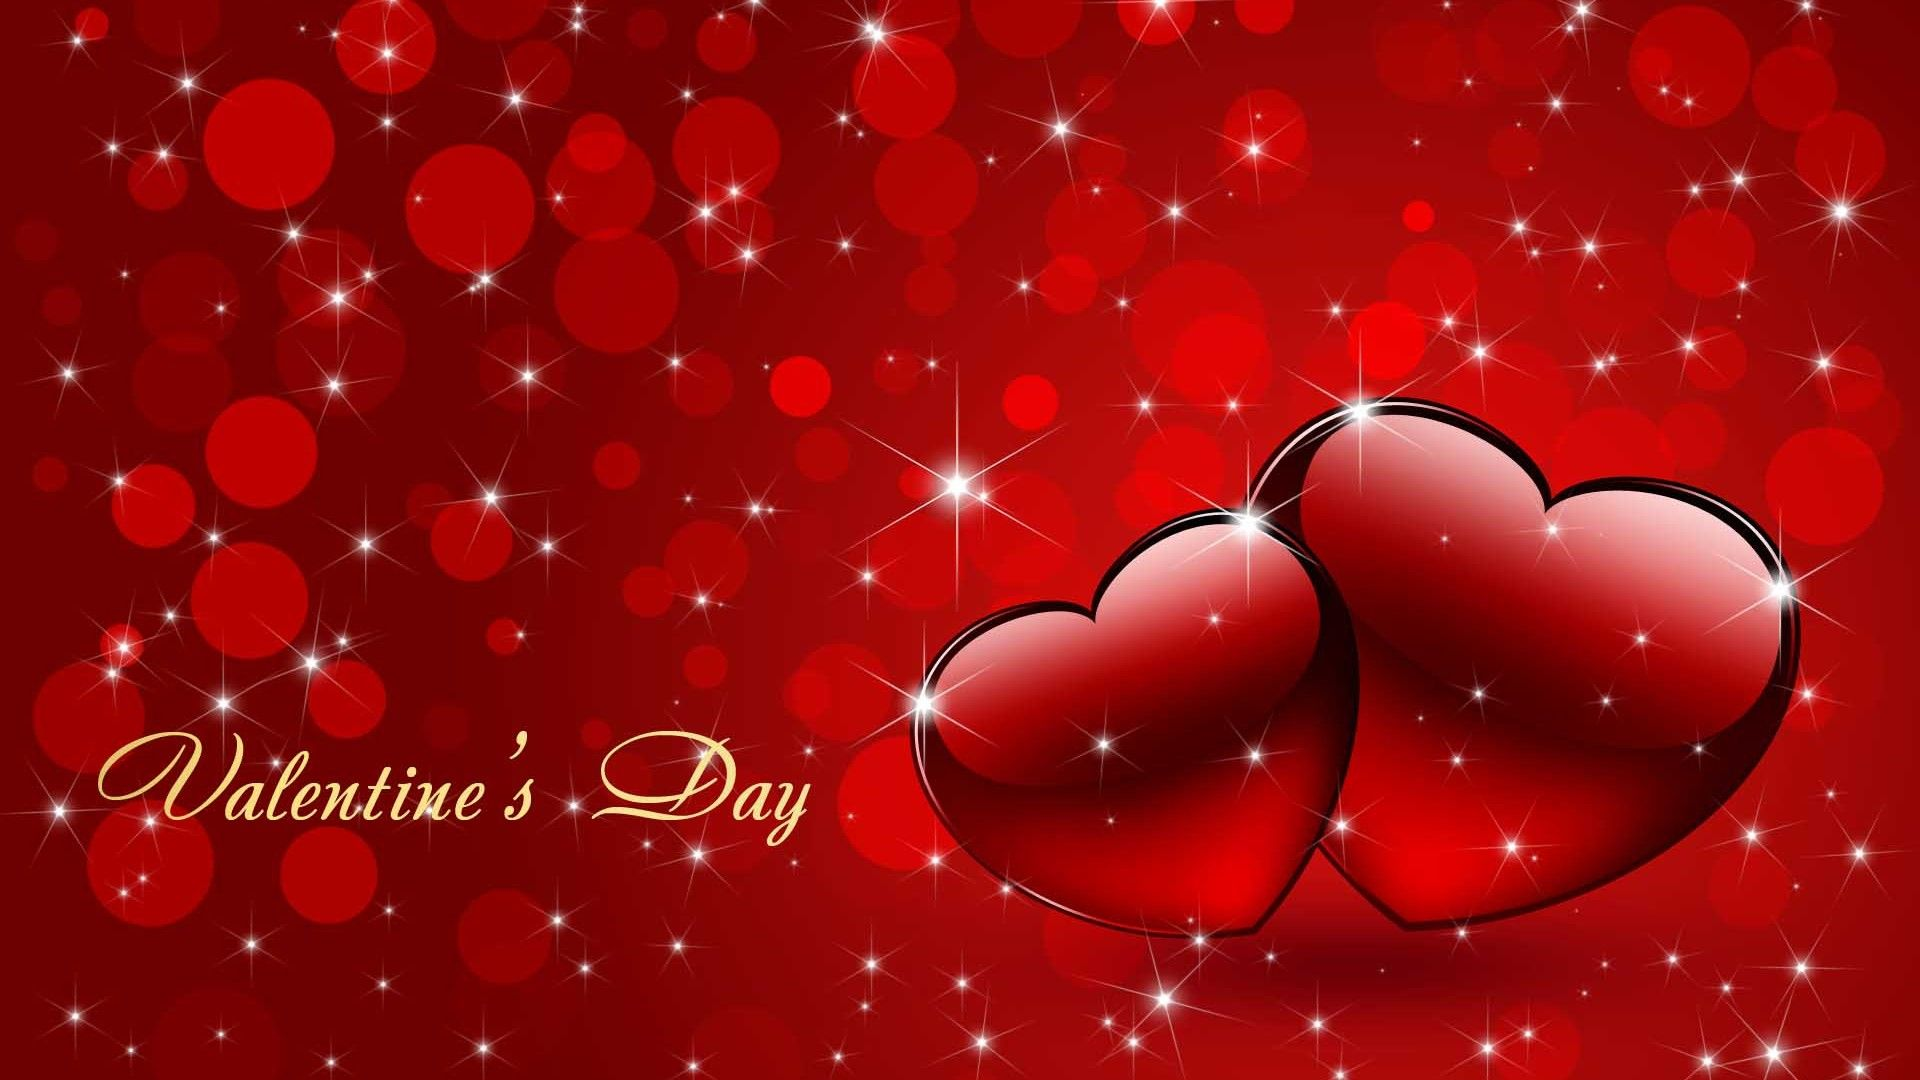 Zhy Polyester Fabric Happy Valentine s Day Backdrop 7x5ft Saint Valentine s Day Photos Background Love Photos Heart-Shaped Decor Gifts Valentine s Photobooth Studio Props